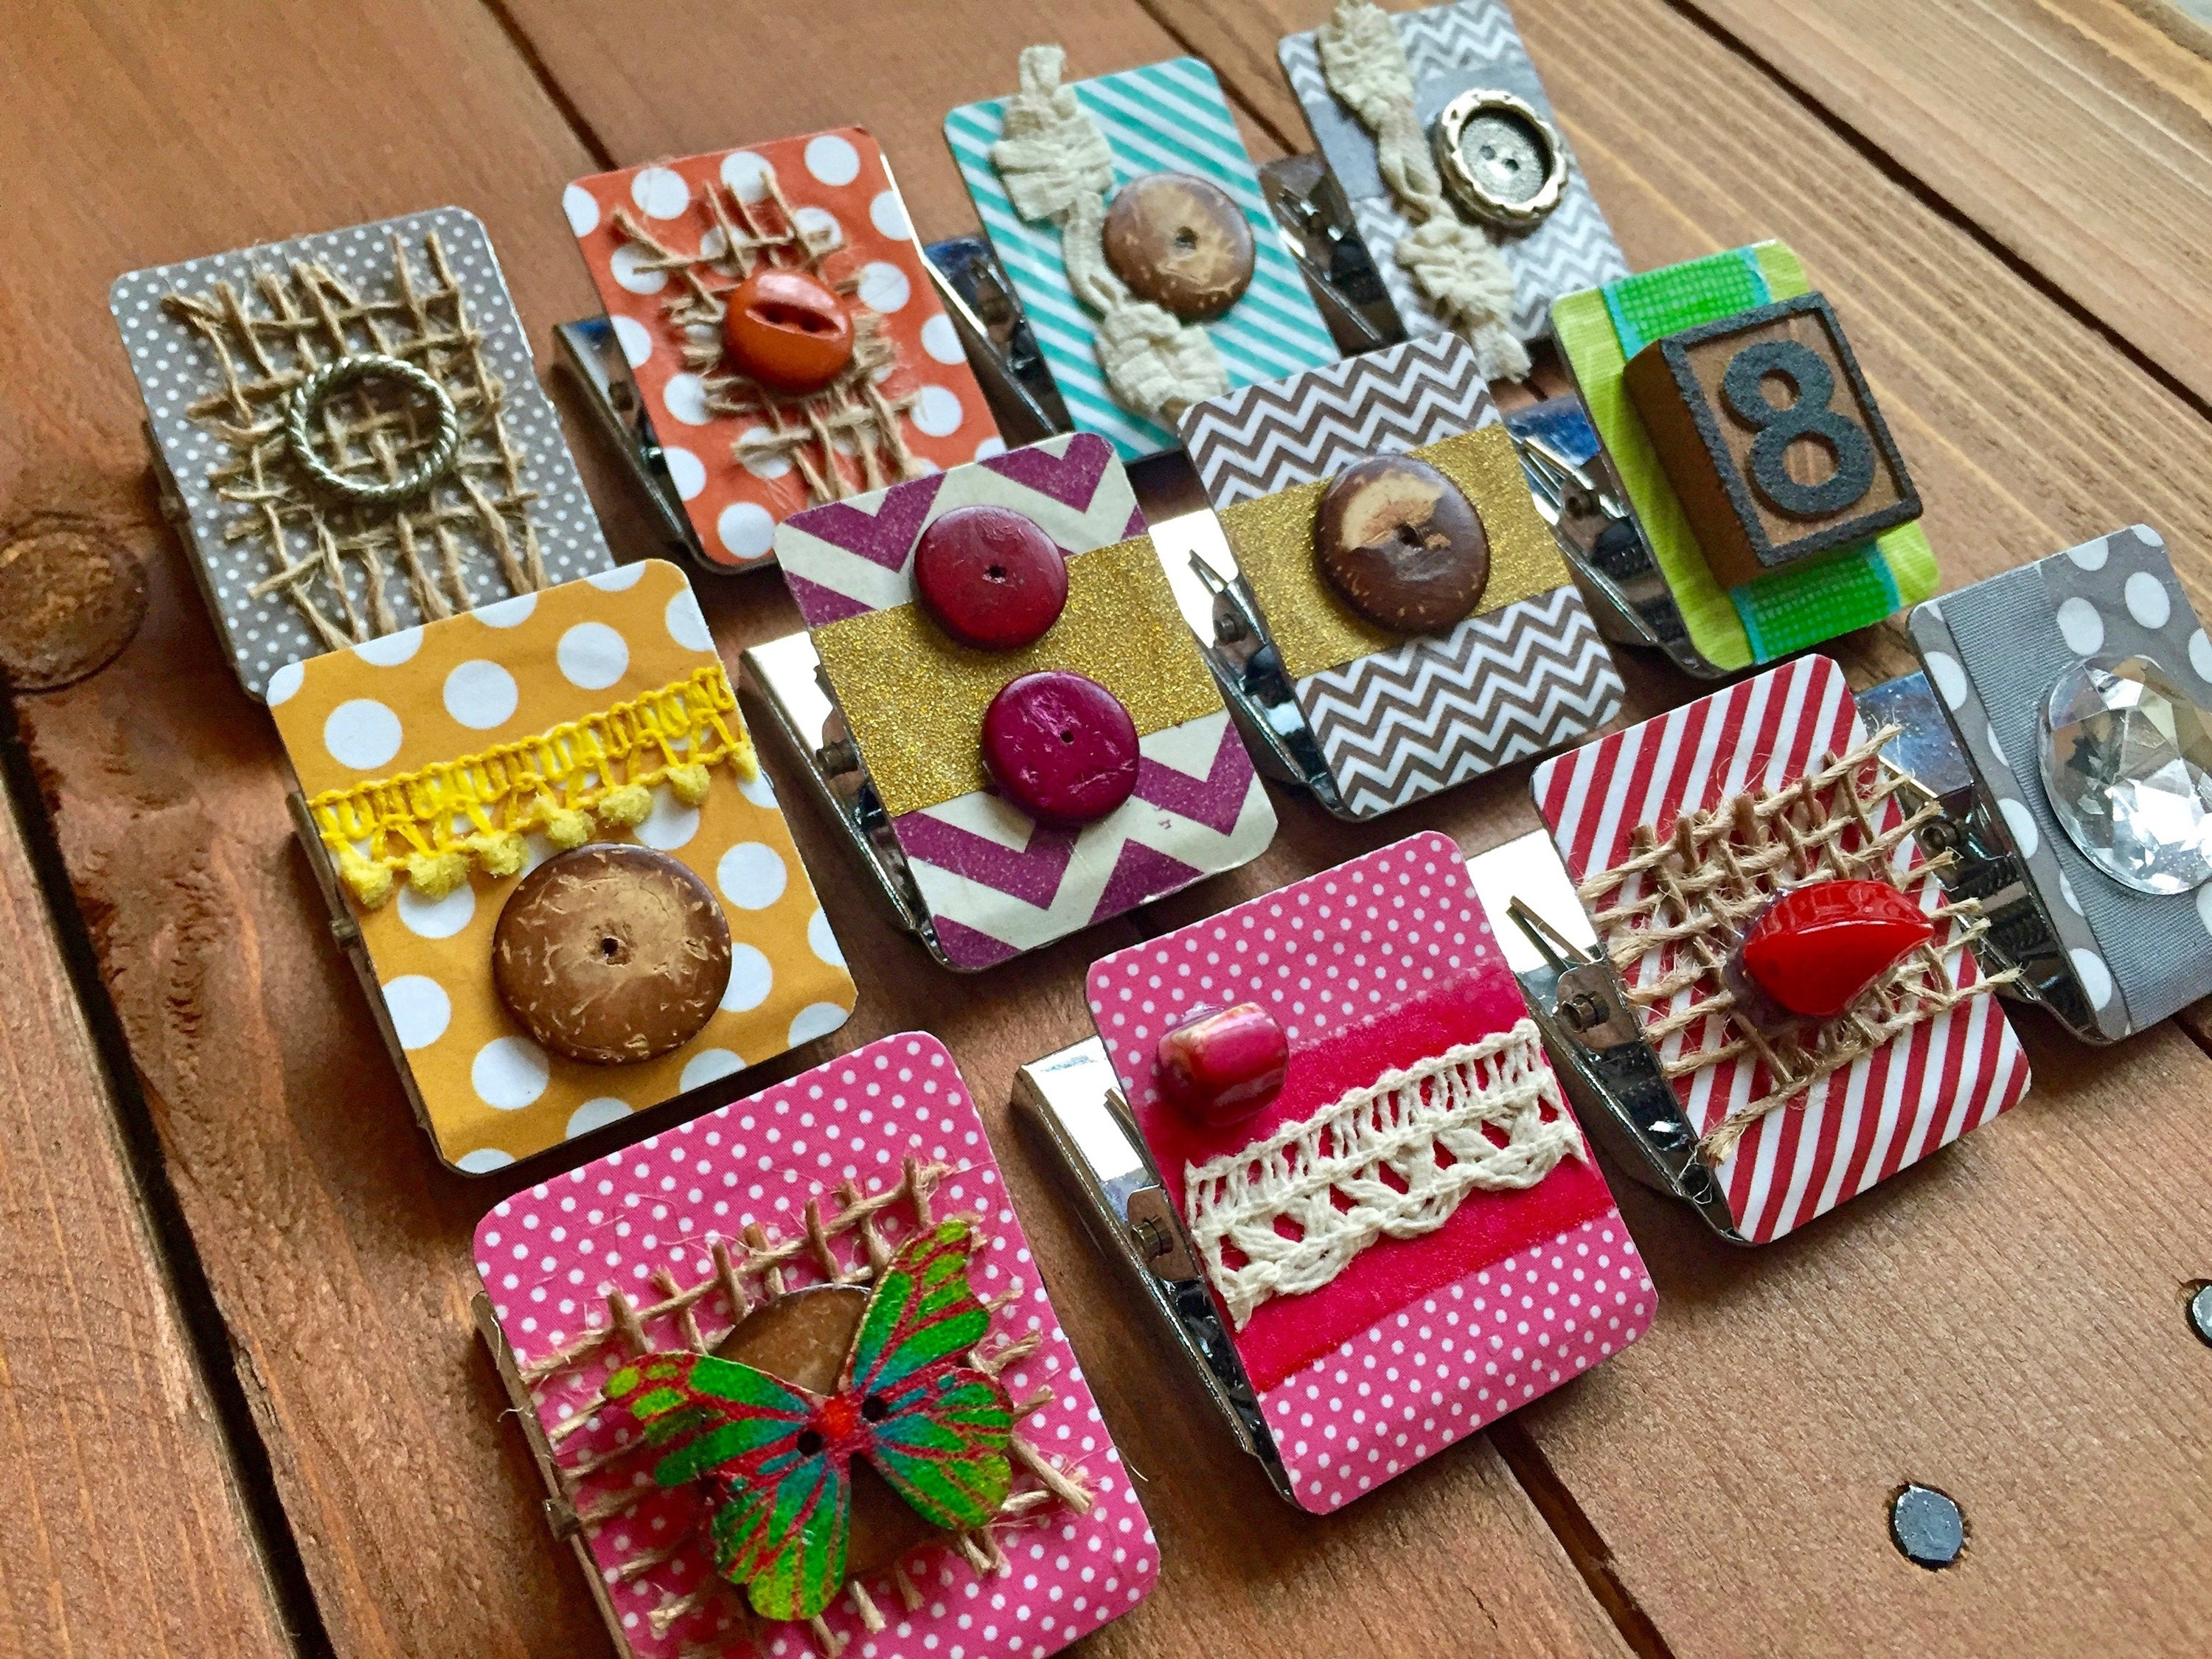 Set of 3 Metal Magnet Clips, Kitchen Magnets, Decorated Fridge Magnets Fridge, Refrigerator Magnet Set, Magnetic Clips - Set of 3 Magnets